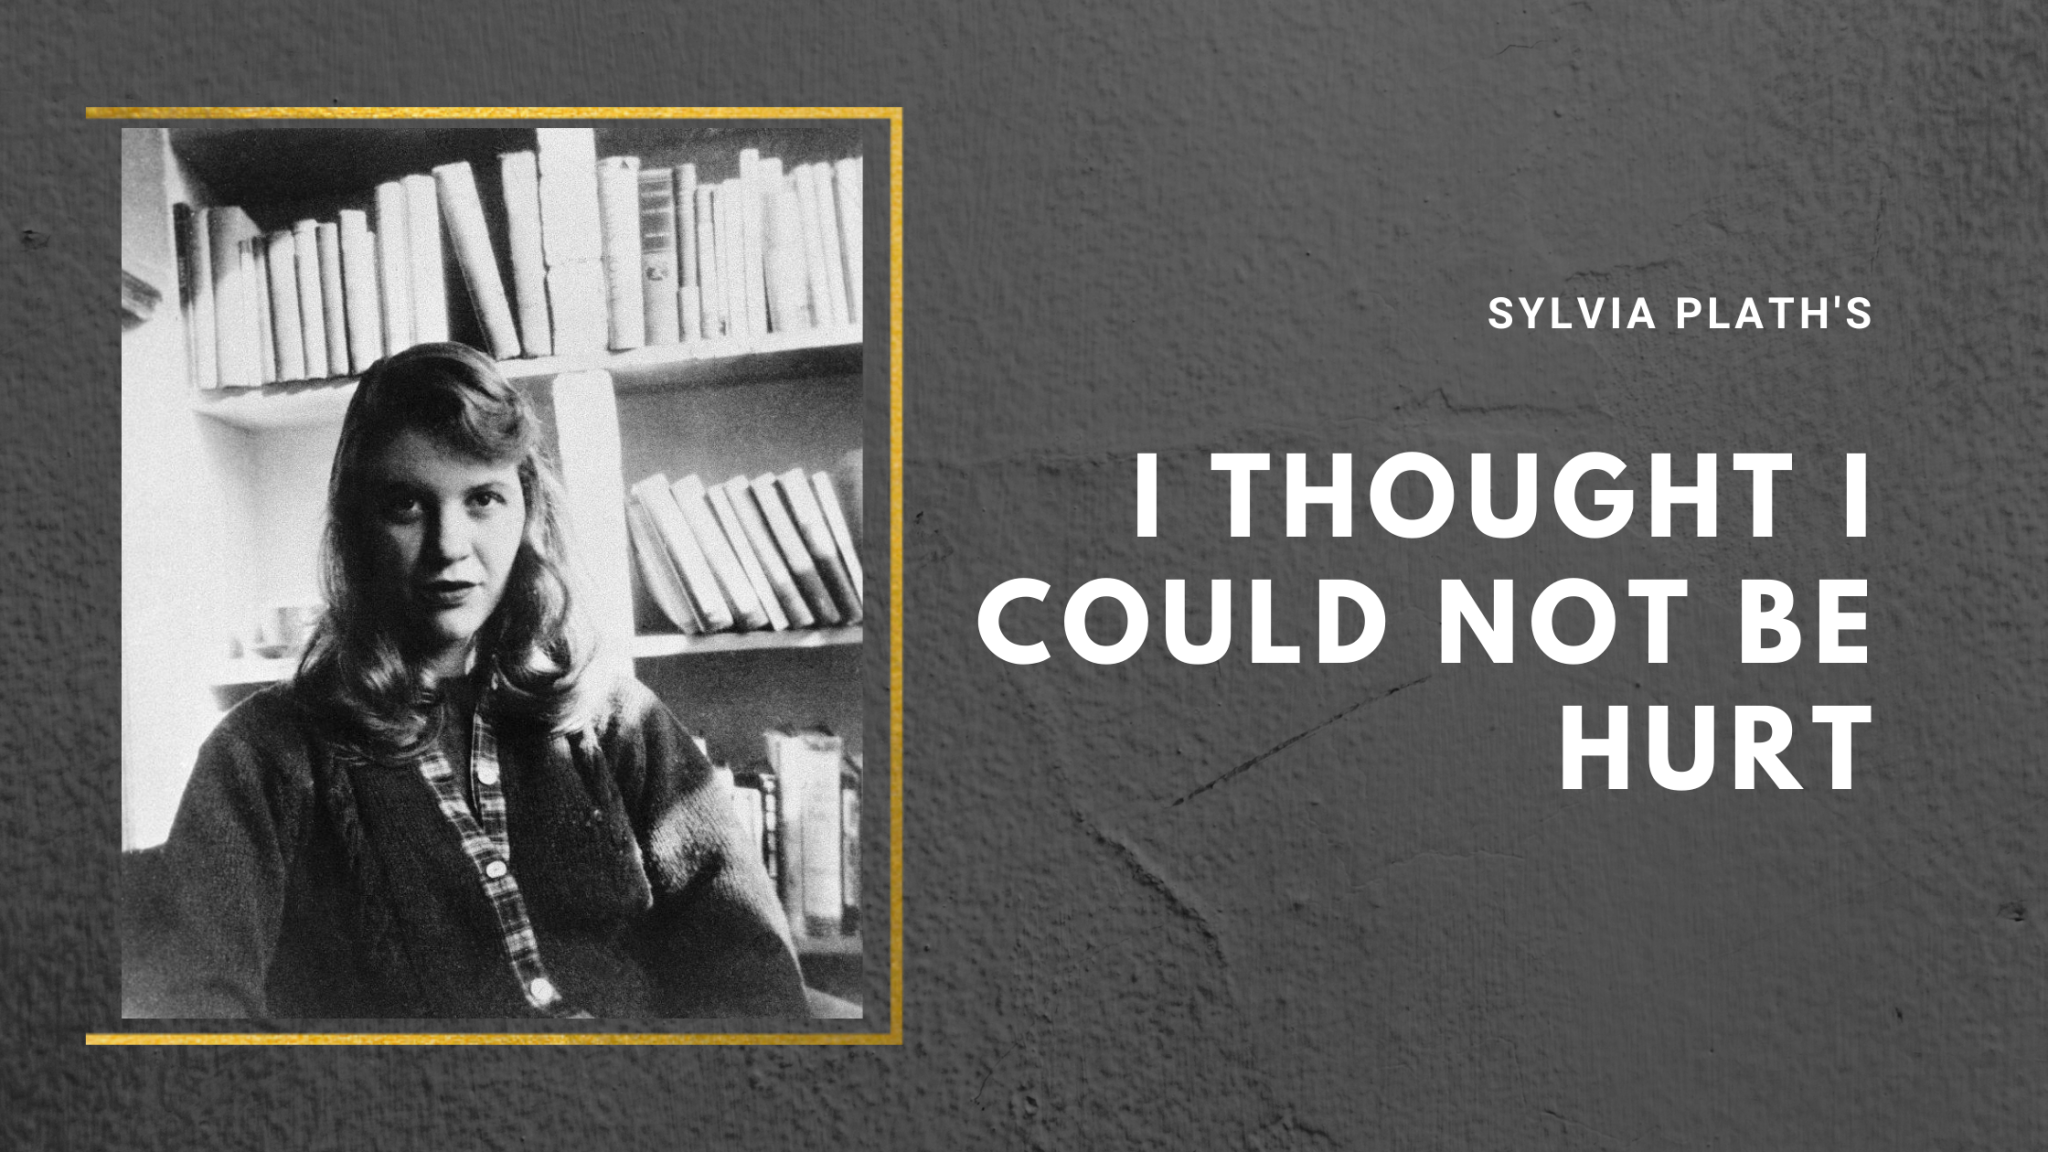 I Thought I Could Not Be Hurt by Sylvia Plath